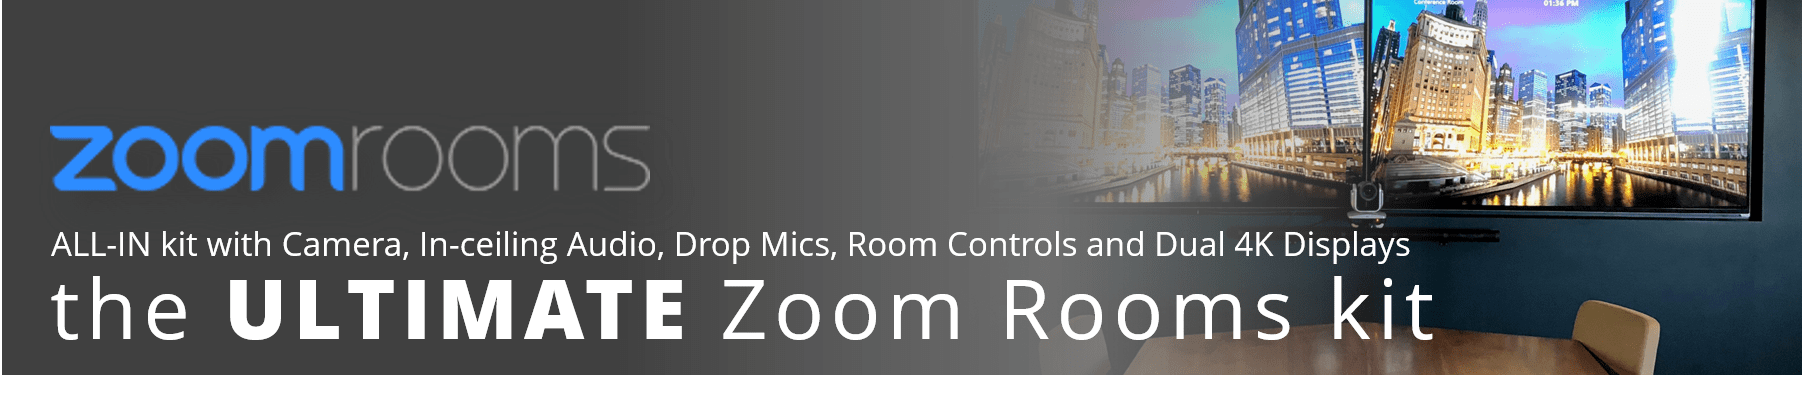 Get Yoour Zoom Rooms from VCG